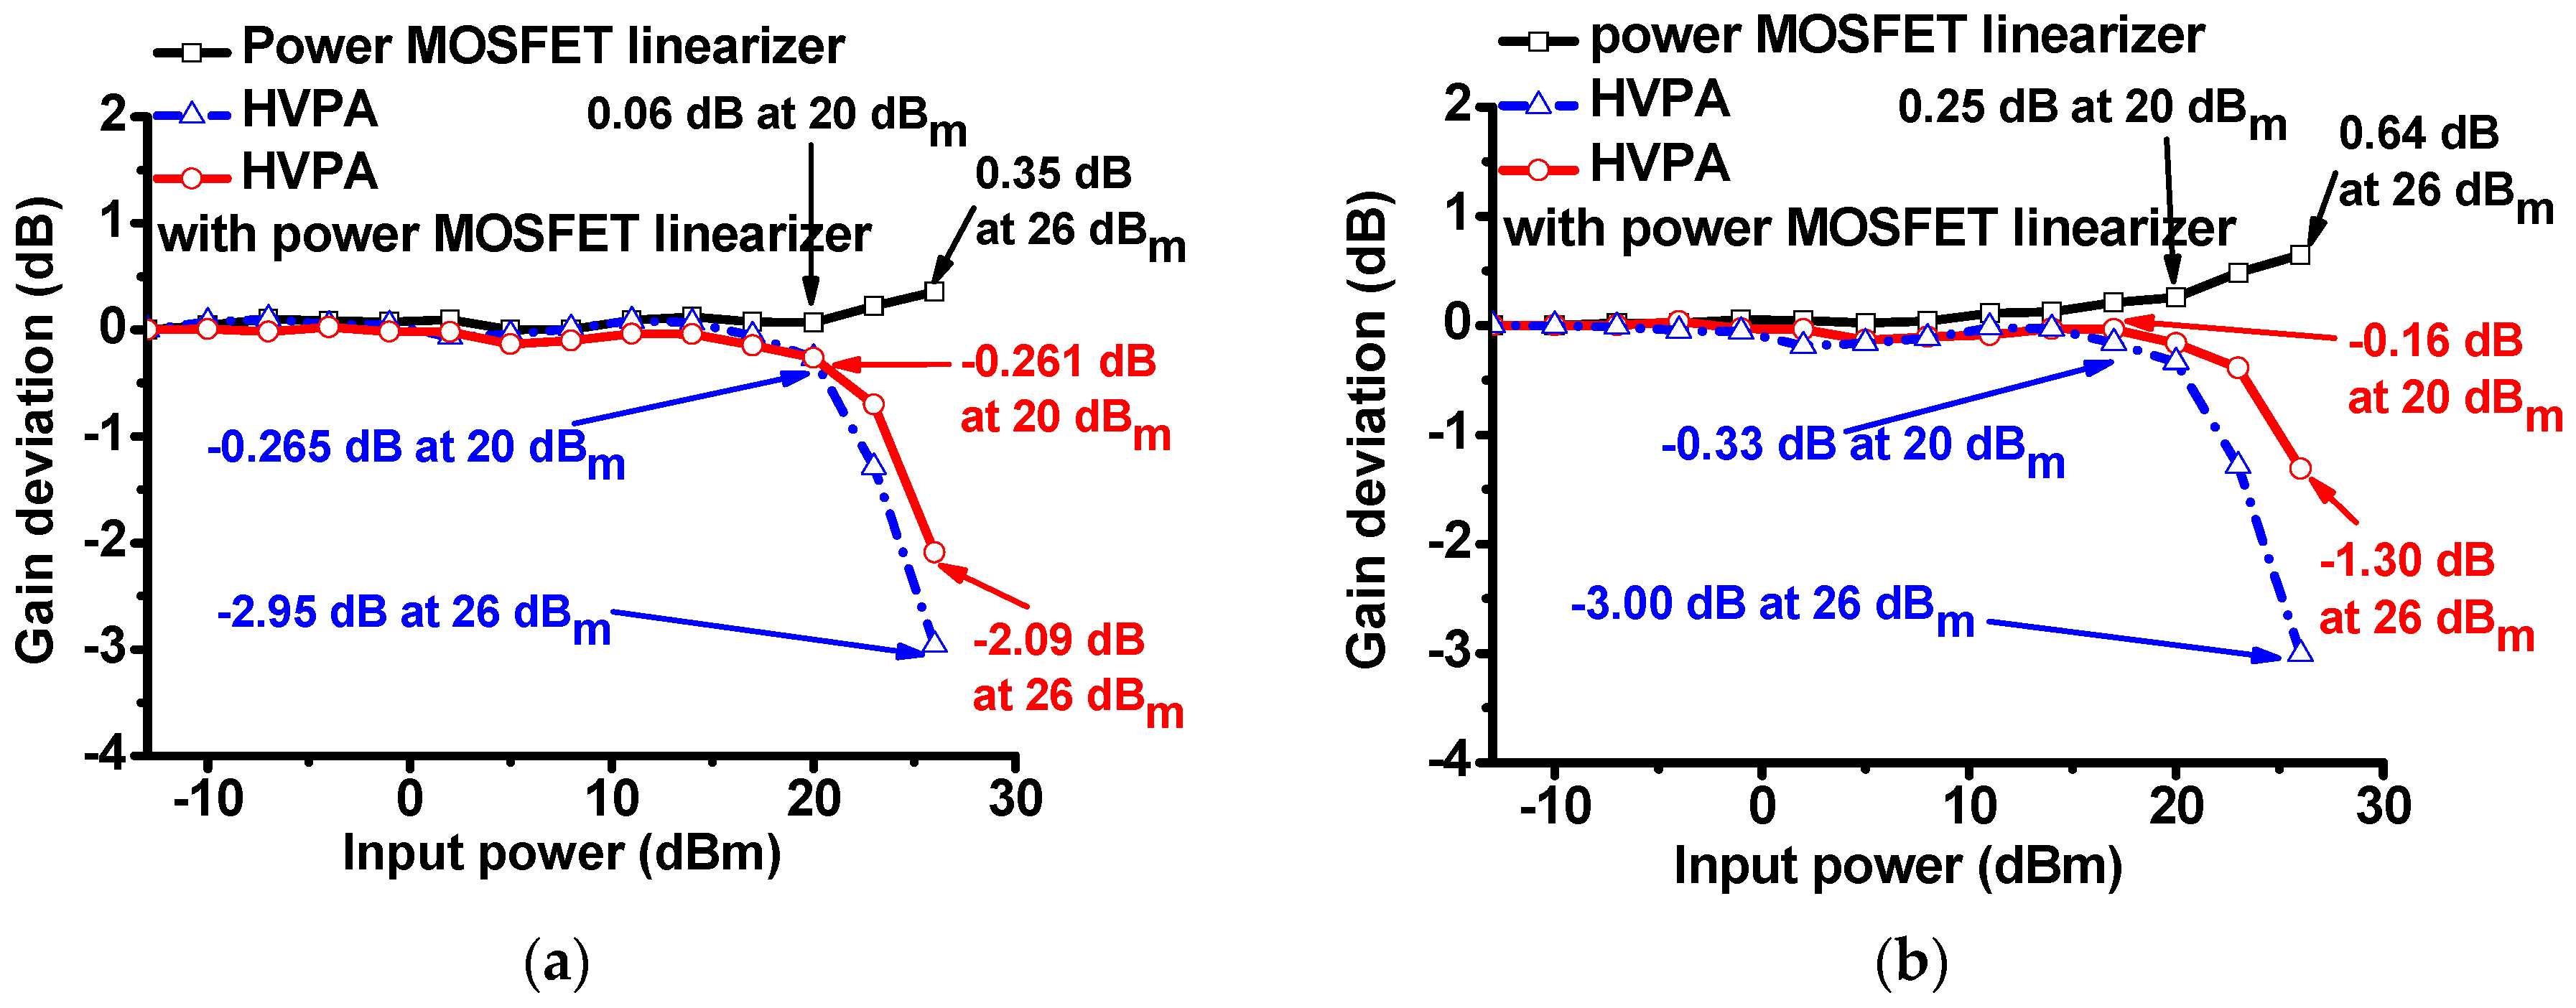 Sensors Free Full Text Power Mosfet Linearizer Of A High Voltage Could Be Used Just As Easily No